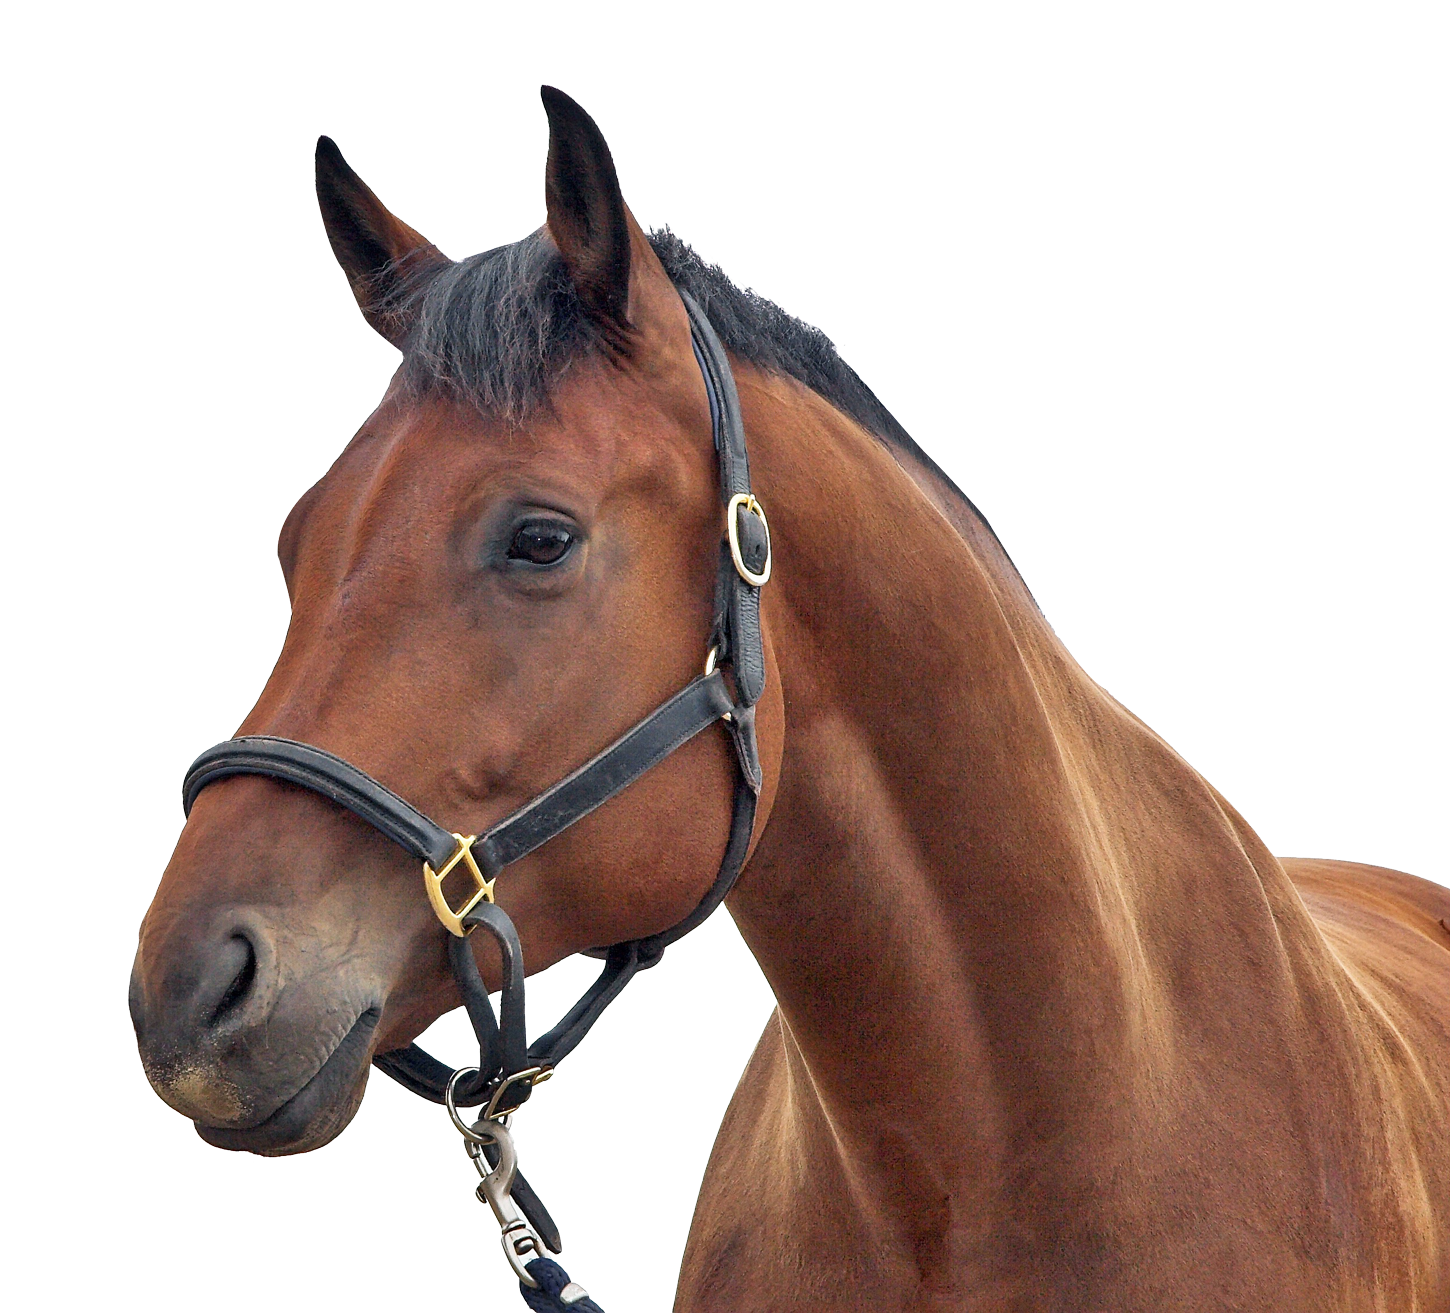 Horse Png Image Horses Free Horses Png